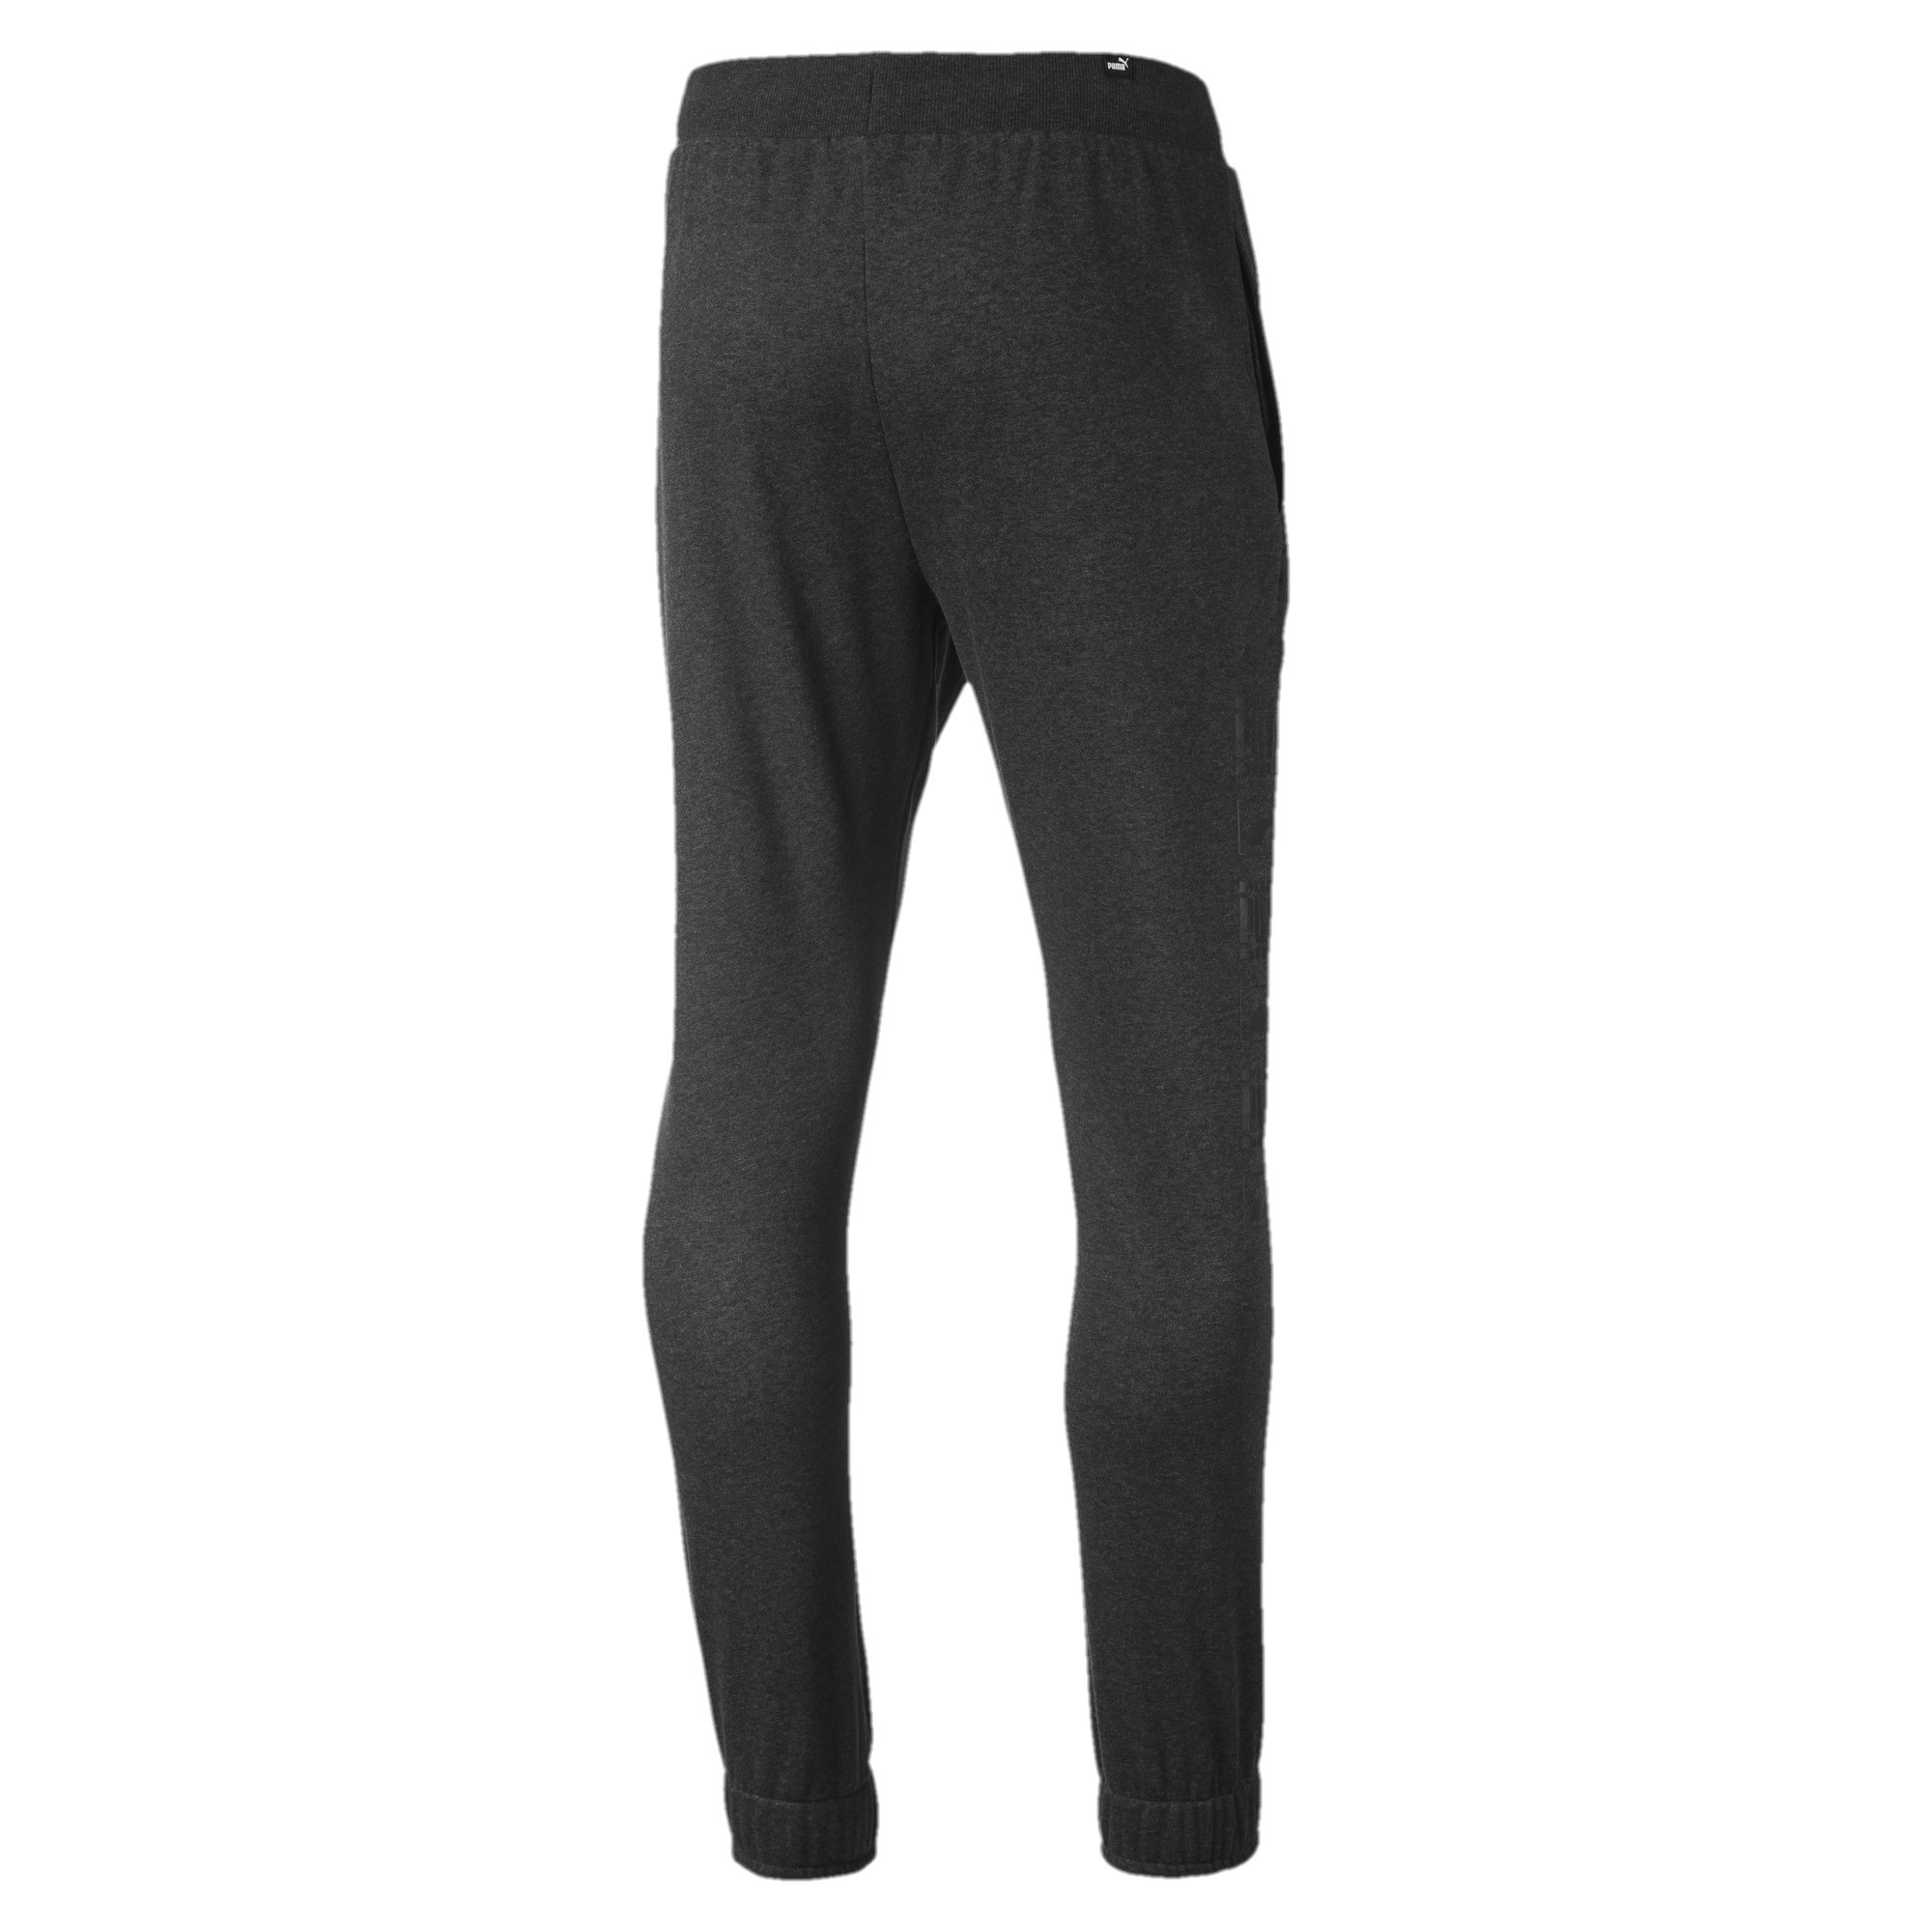 PUMA-Rebel-Bold-Men-039-s-Sweatpants-Men-Knitted-Pants-Basics thumbnail 13